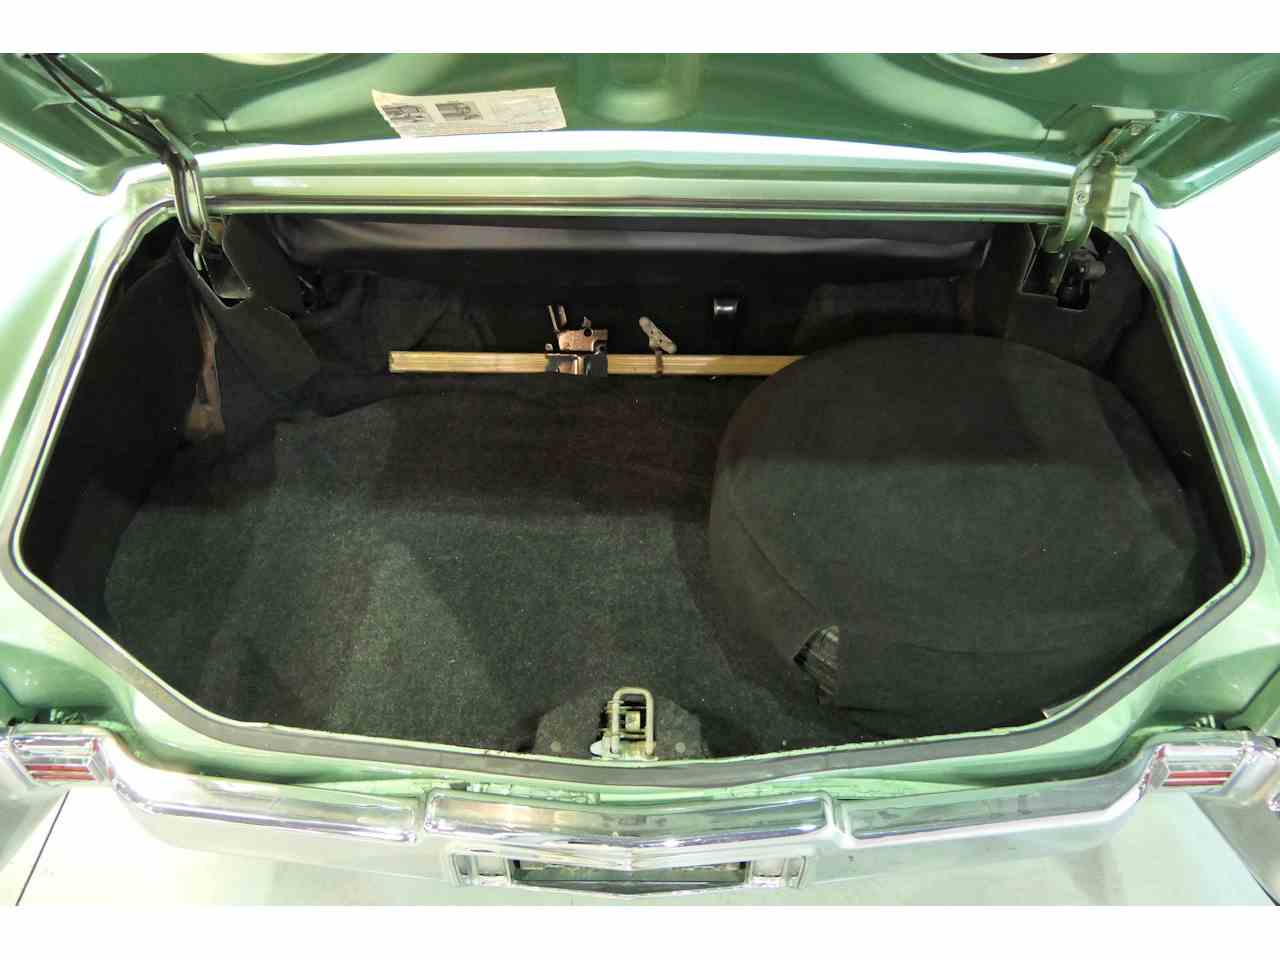 Large Picture of Classic 1972 Cadillac Eldorado - $25,995.00 Offered by Gateway Classic Cars - Orlando - NEP5